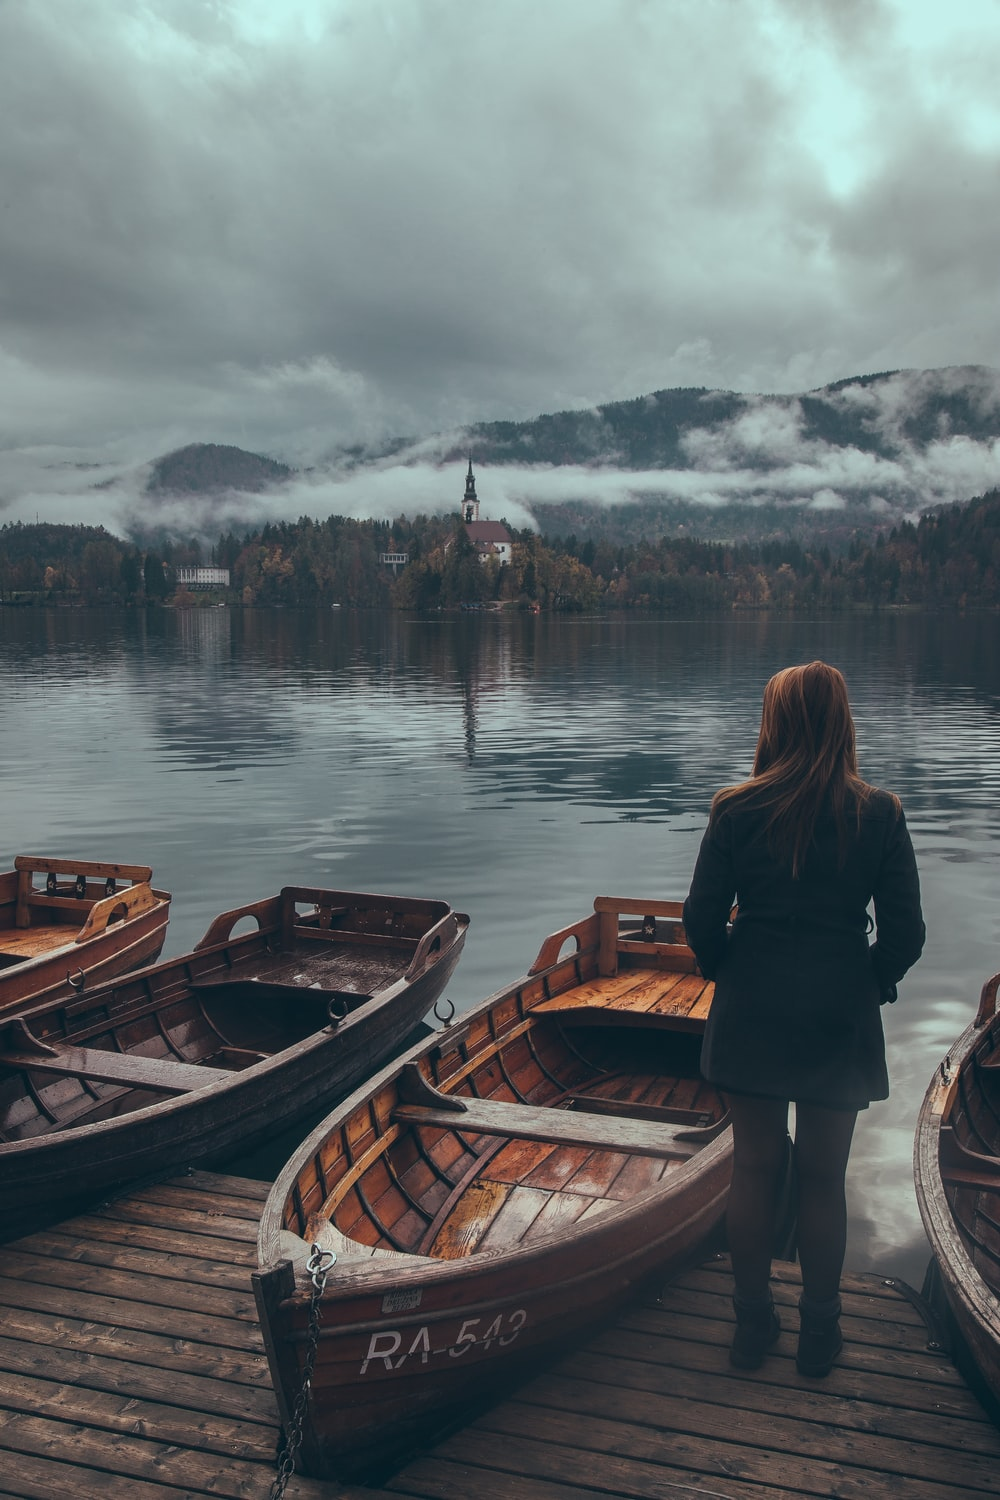 woman standing by the wooden boats at the lake under grey cloudy sky